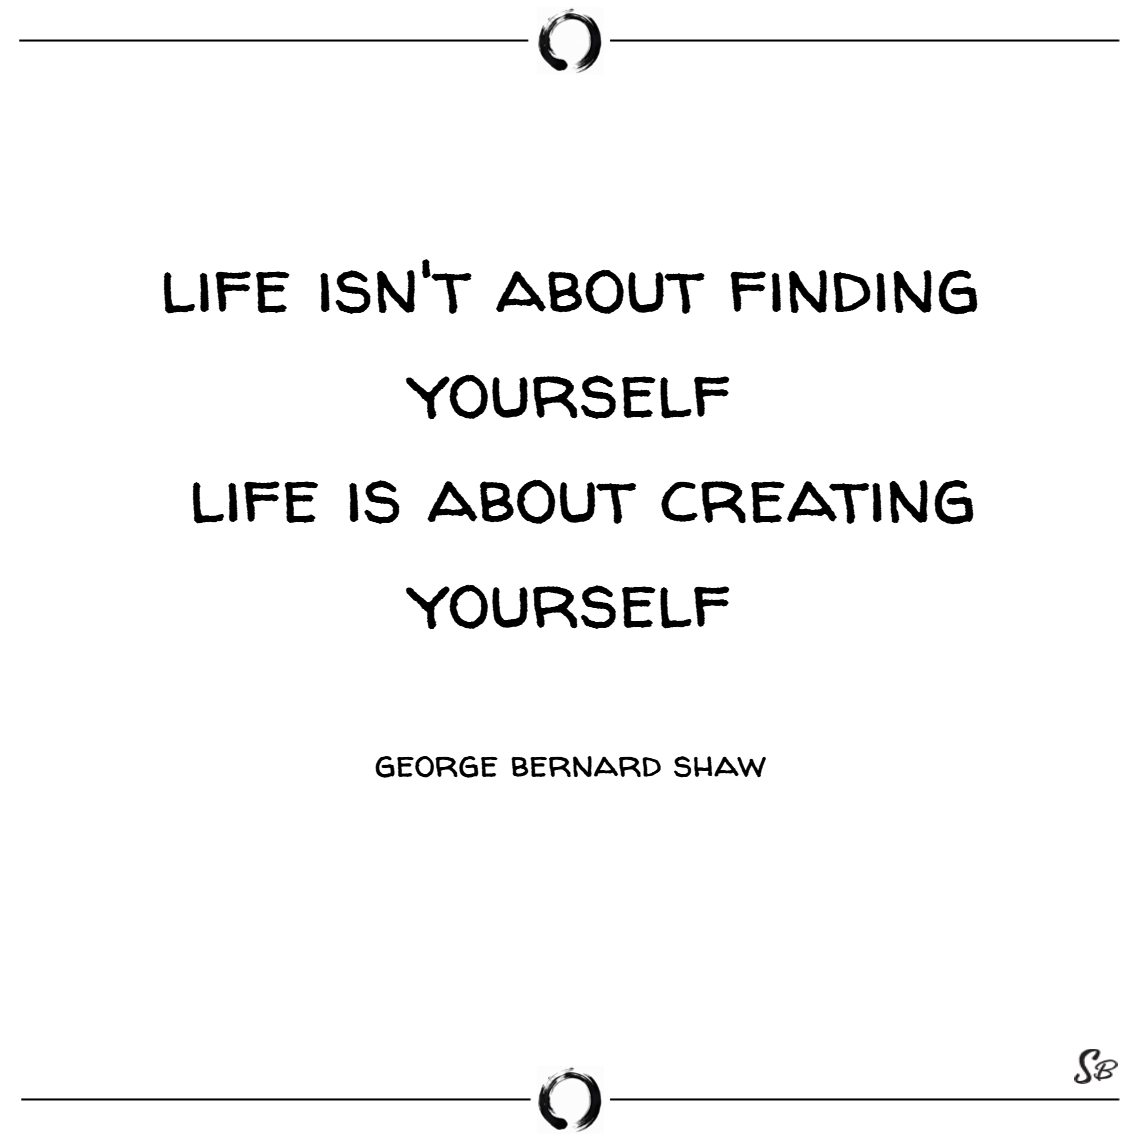 Life isn't about finding yourself. life is about creating yourself. – george bernard shaw